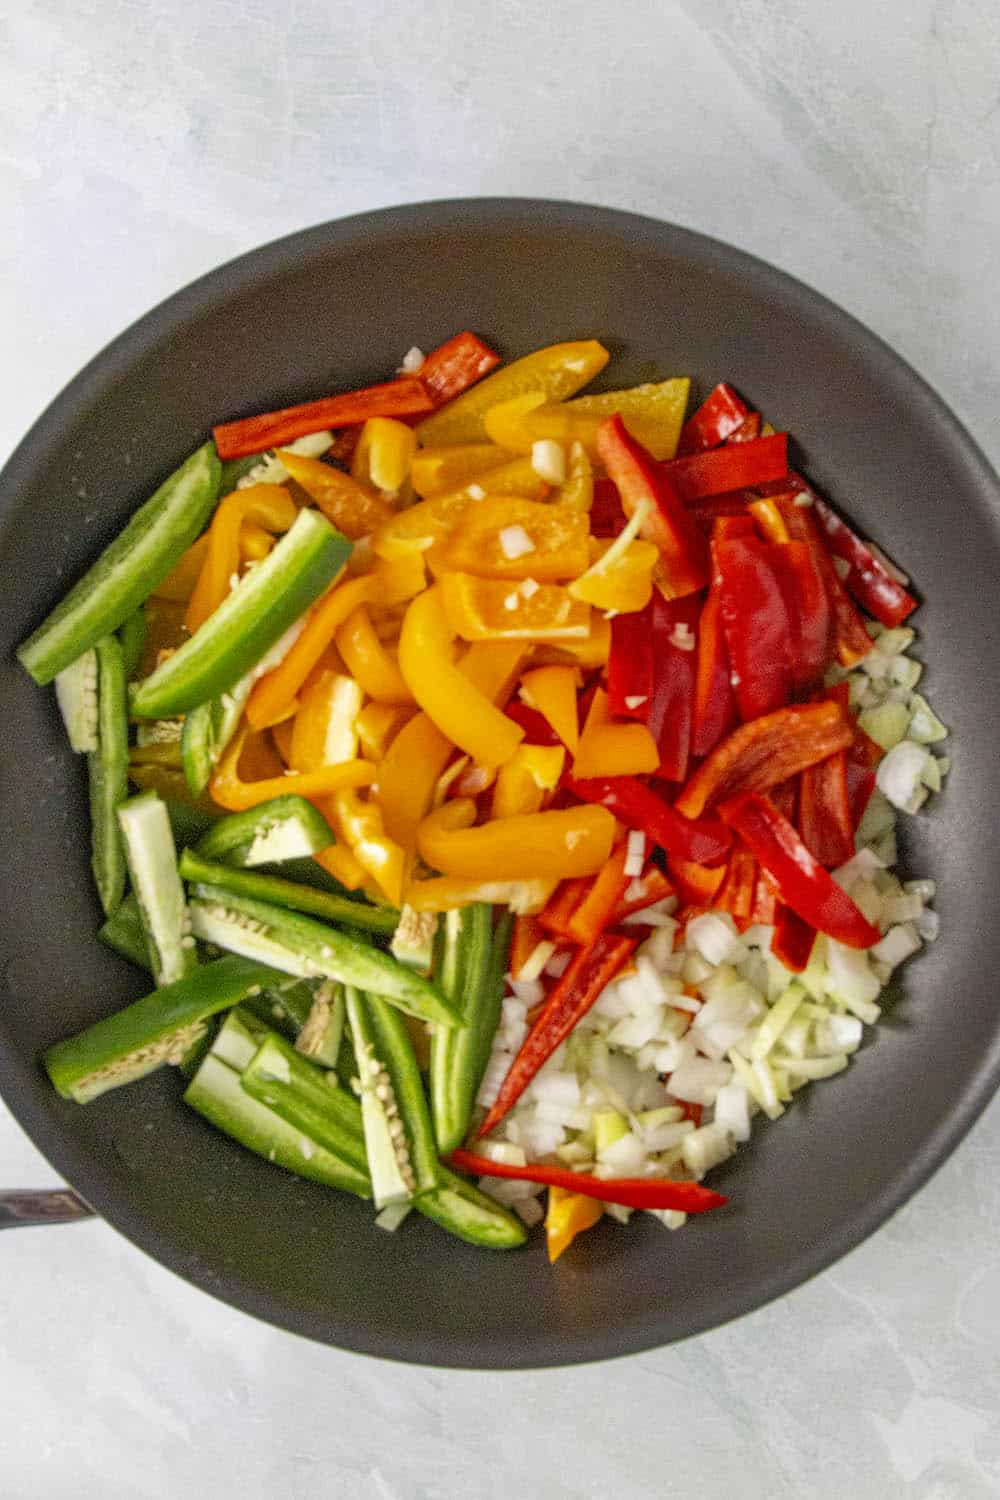 Cooking down the peppers and onions in a pan to make rasta pasta